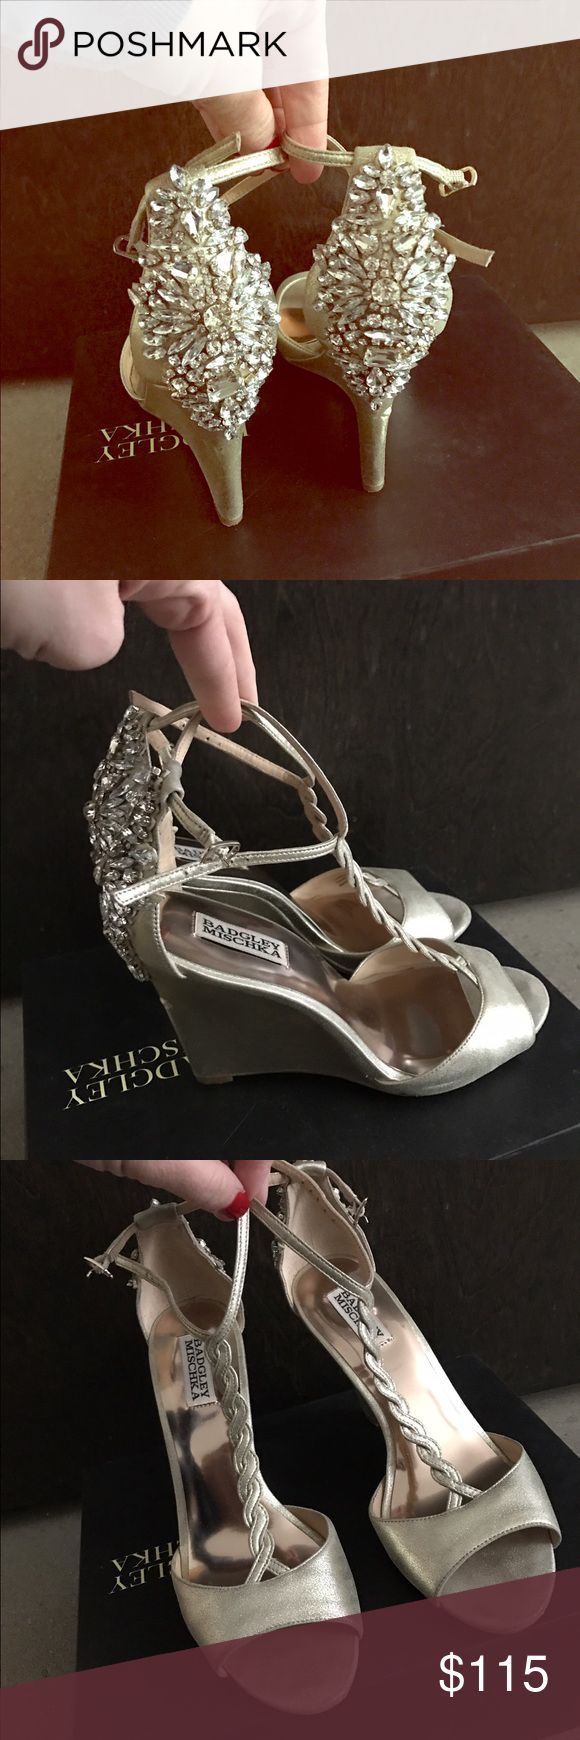 Badgley Mischka wedge wedding shoes Size 9 wedge wedding shoes worn once on one of the best days of my life! I brought a pair of flats on my wedding day in case my feet hurt at the reception. I forgot to change into them because my feet never hurt. These are beautiful and comfortable. Badgley Mischka Shoes Wedges